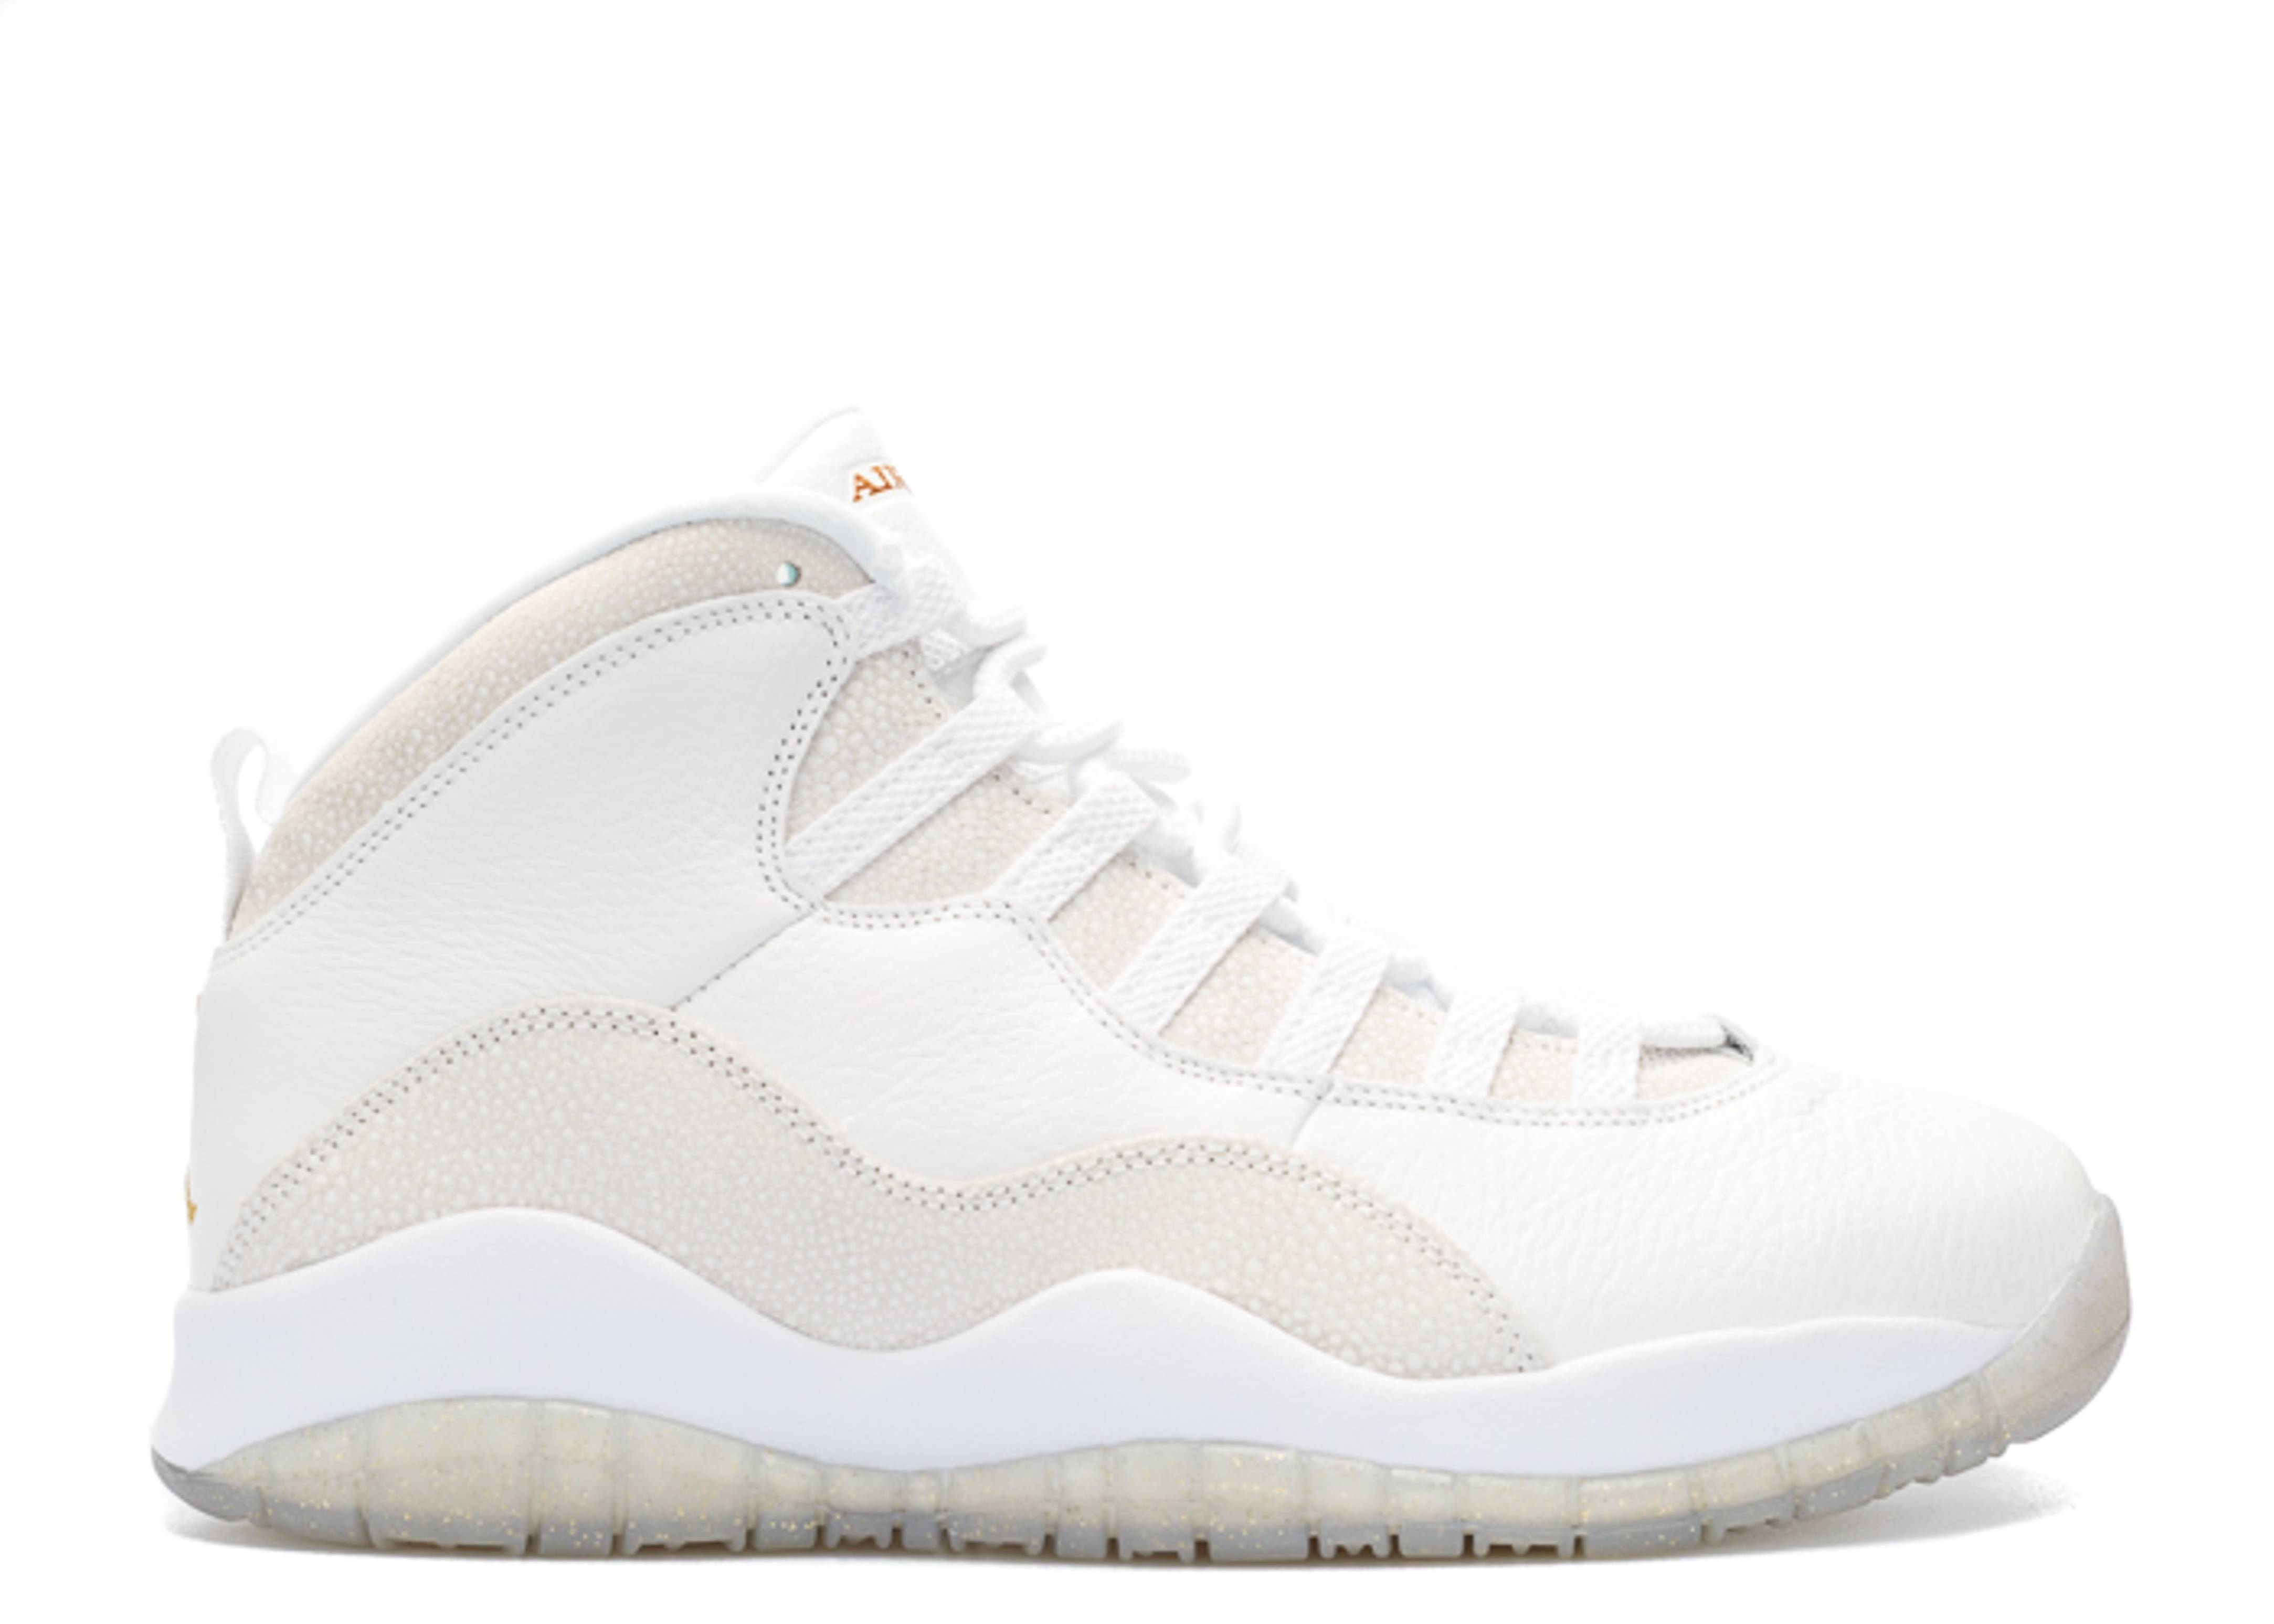 7d5cc048f76f Air Jordan 10 Retro Ovo